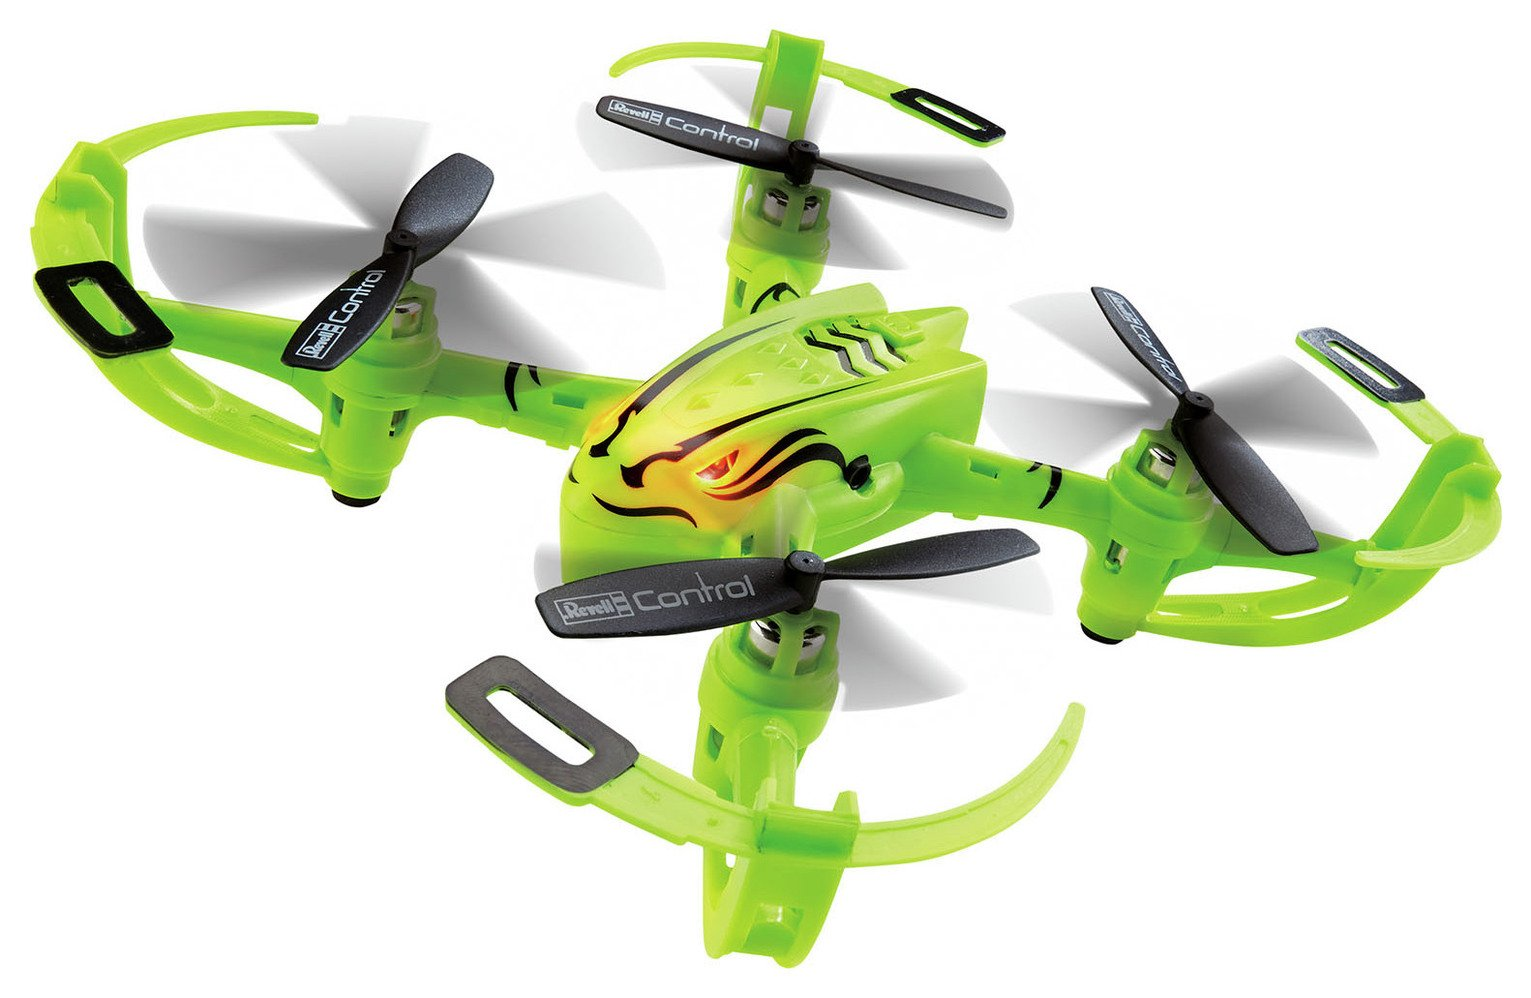 Revell Technick Venom Build Your Own Quadcopter Drone